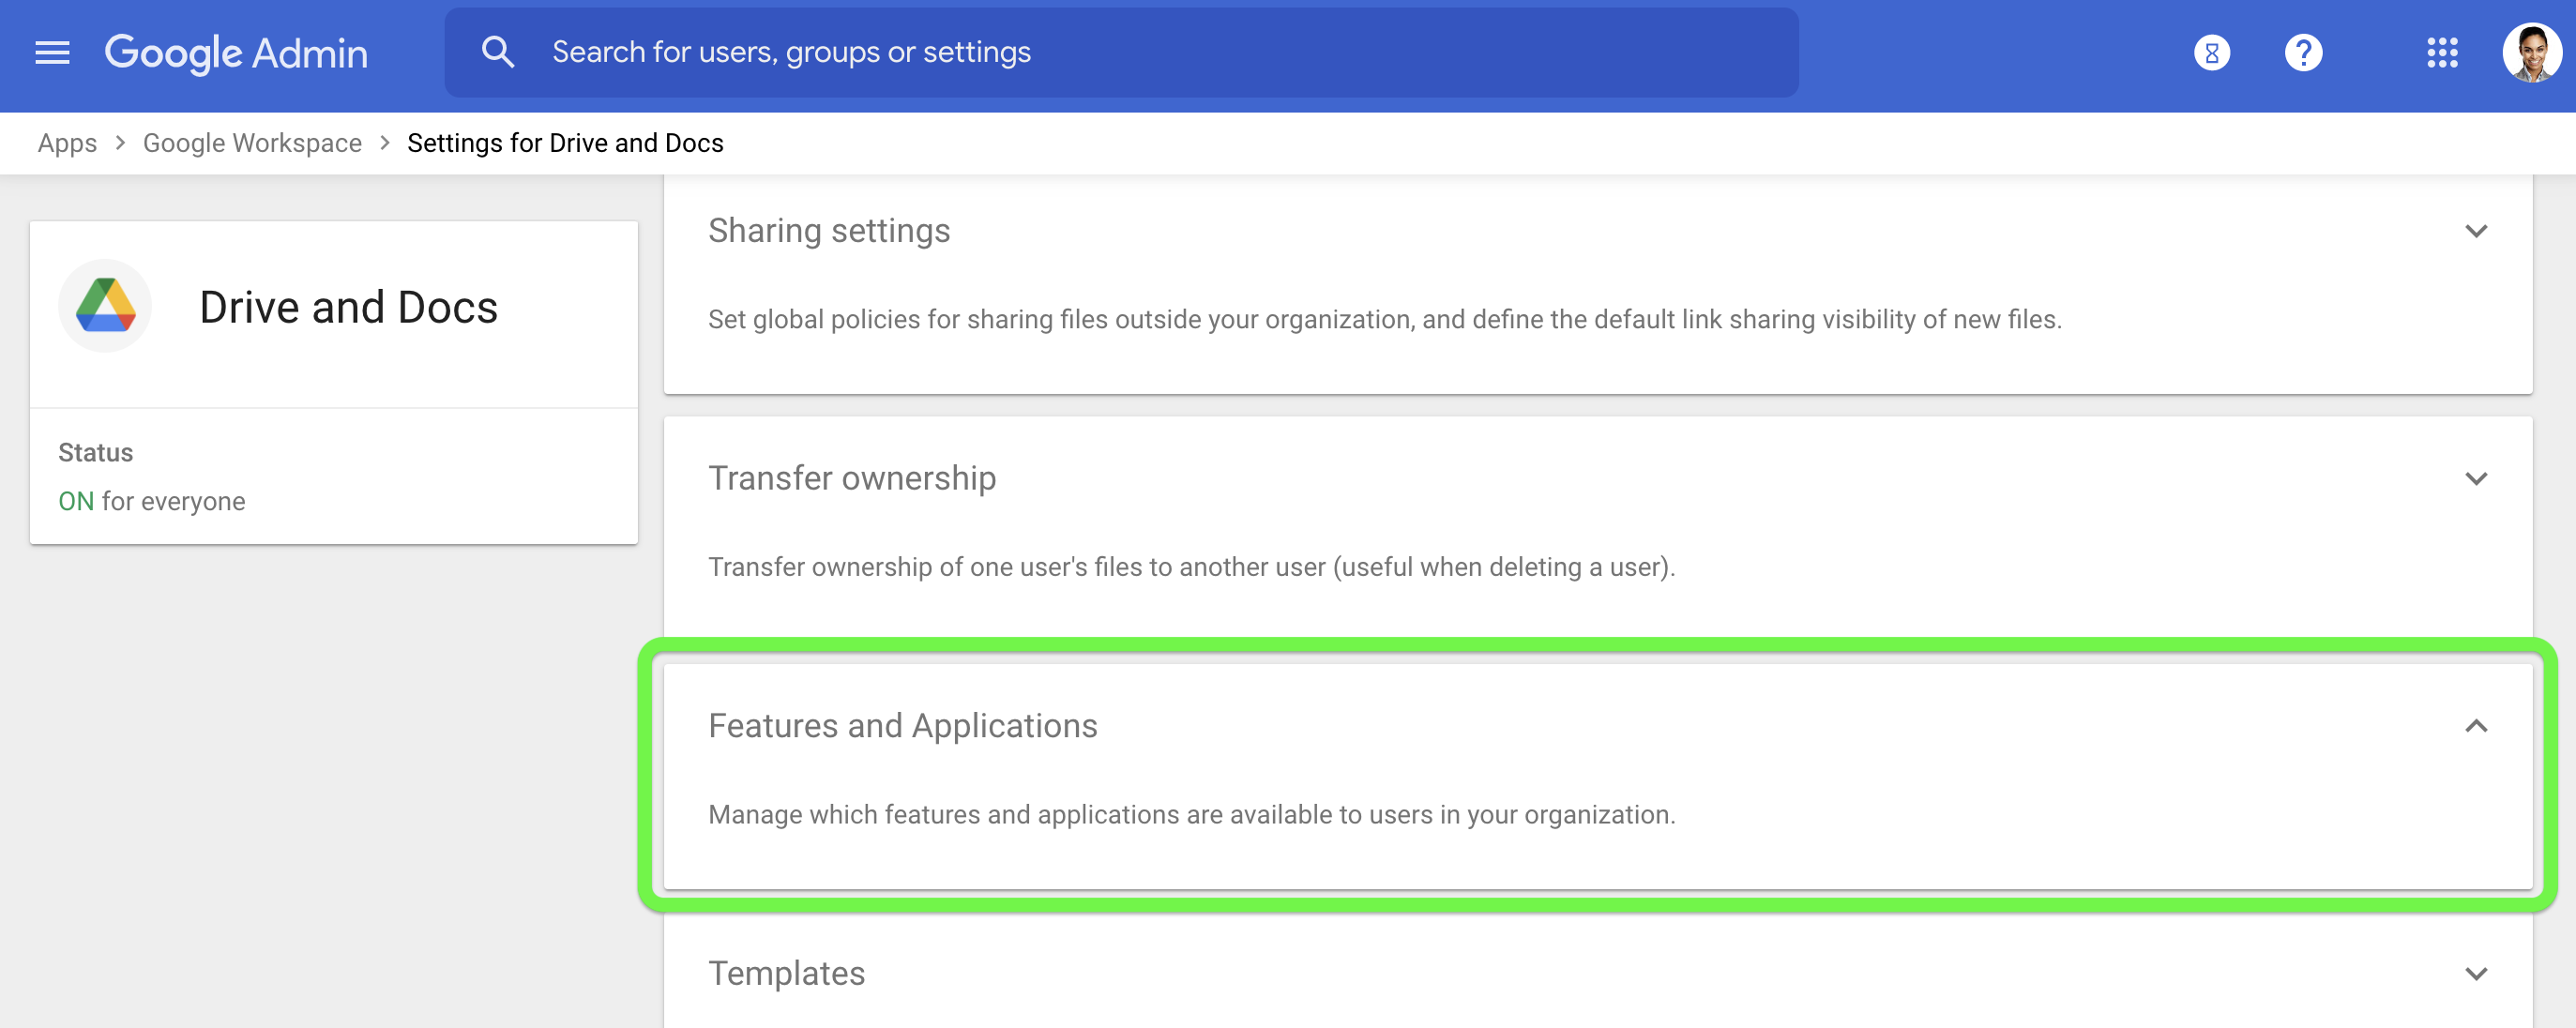 Select Features and Applications to open the access settings